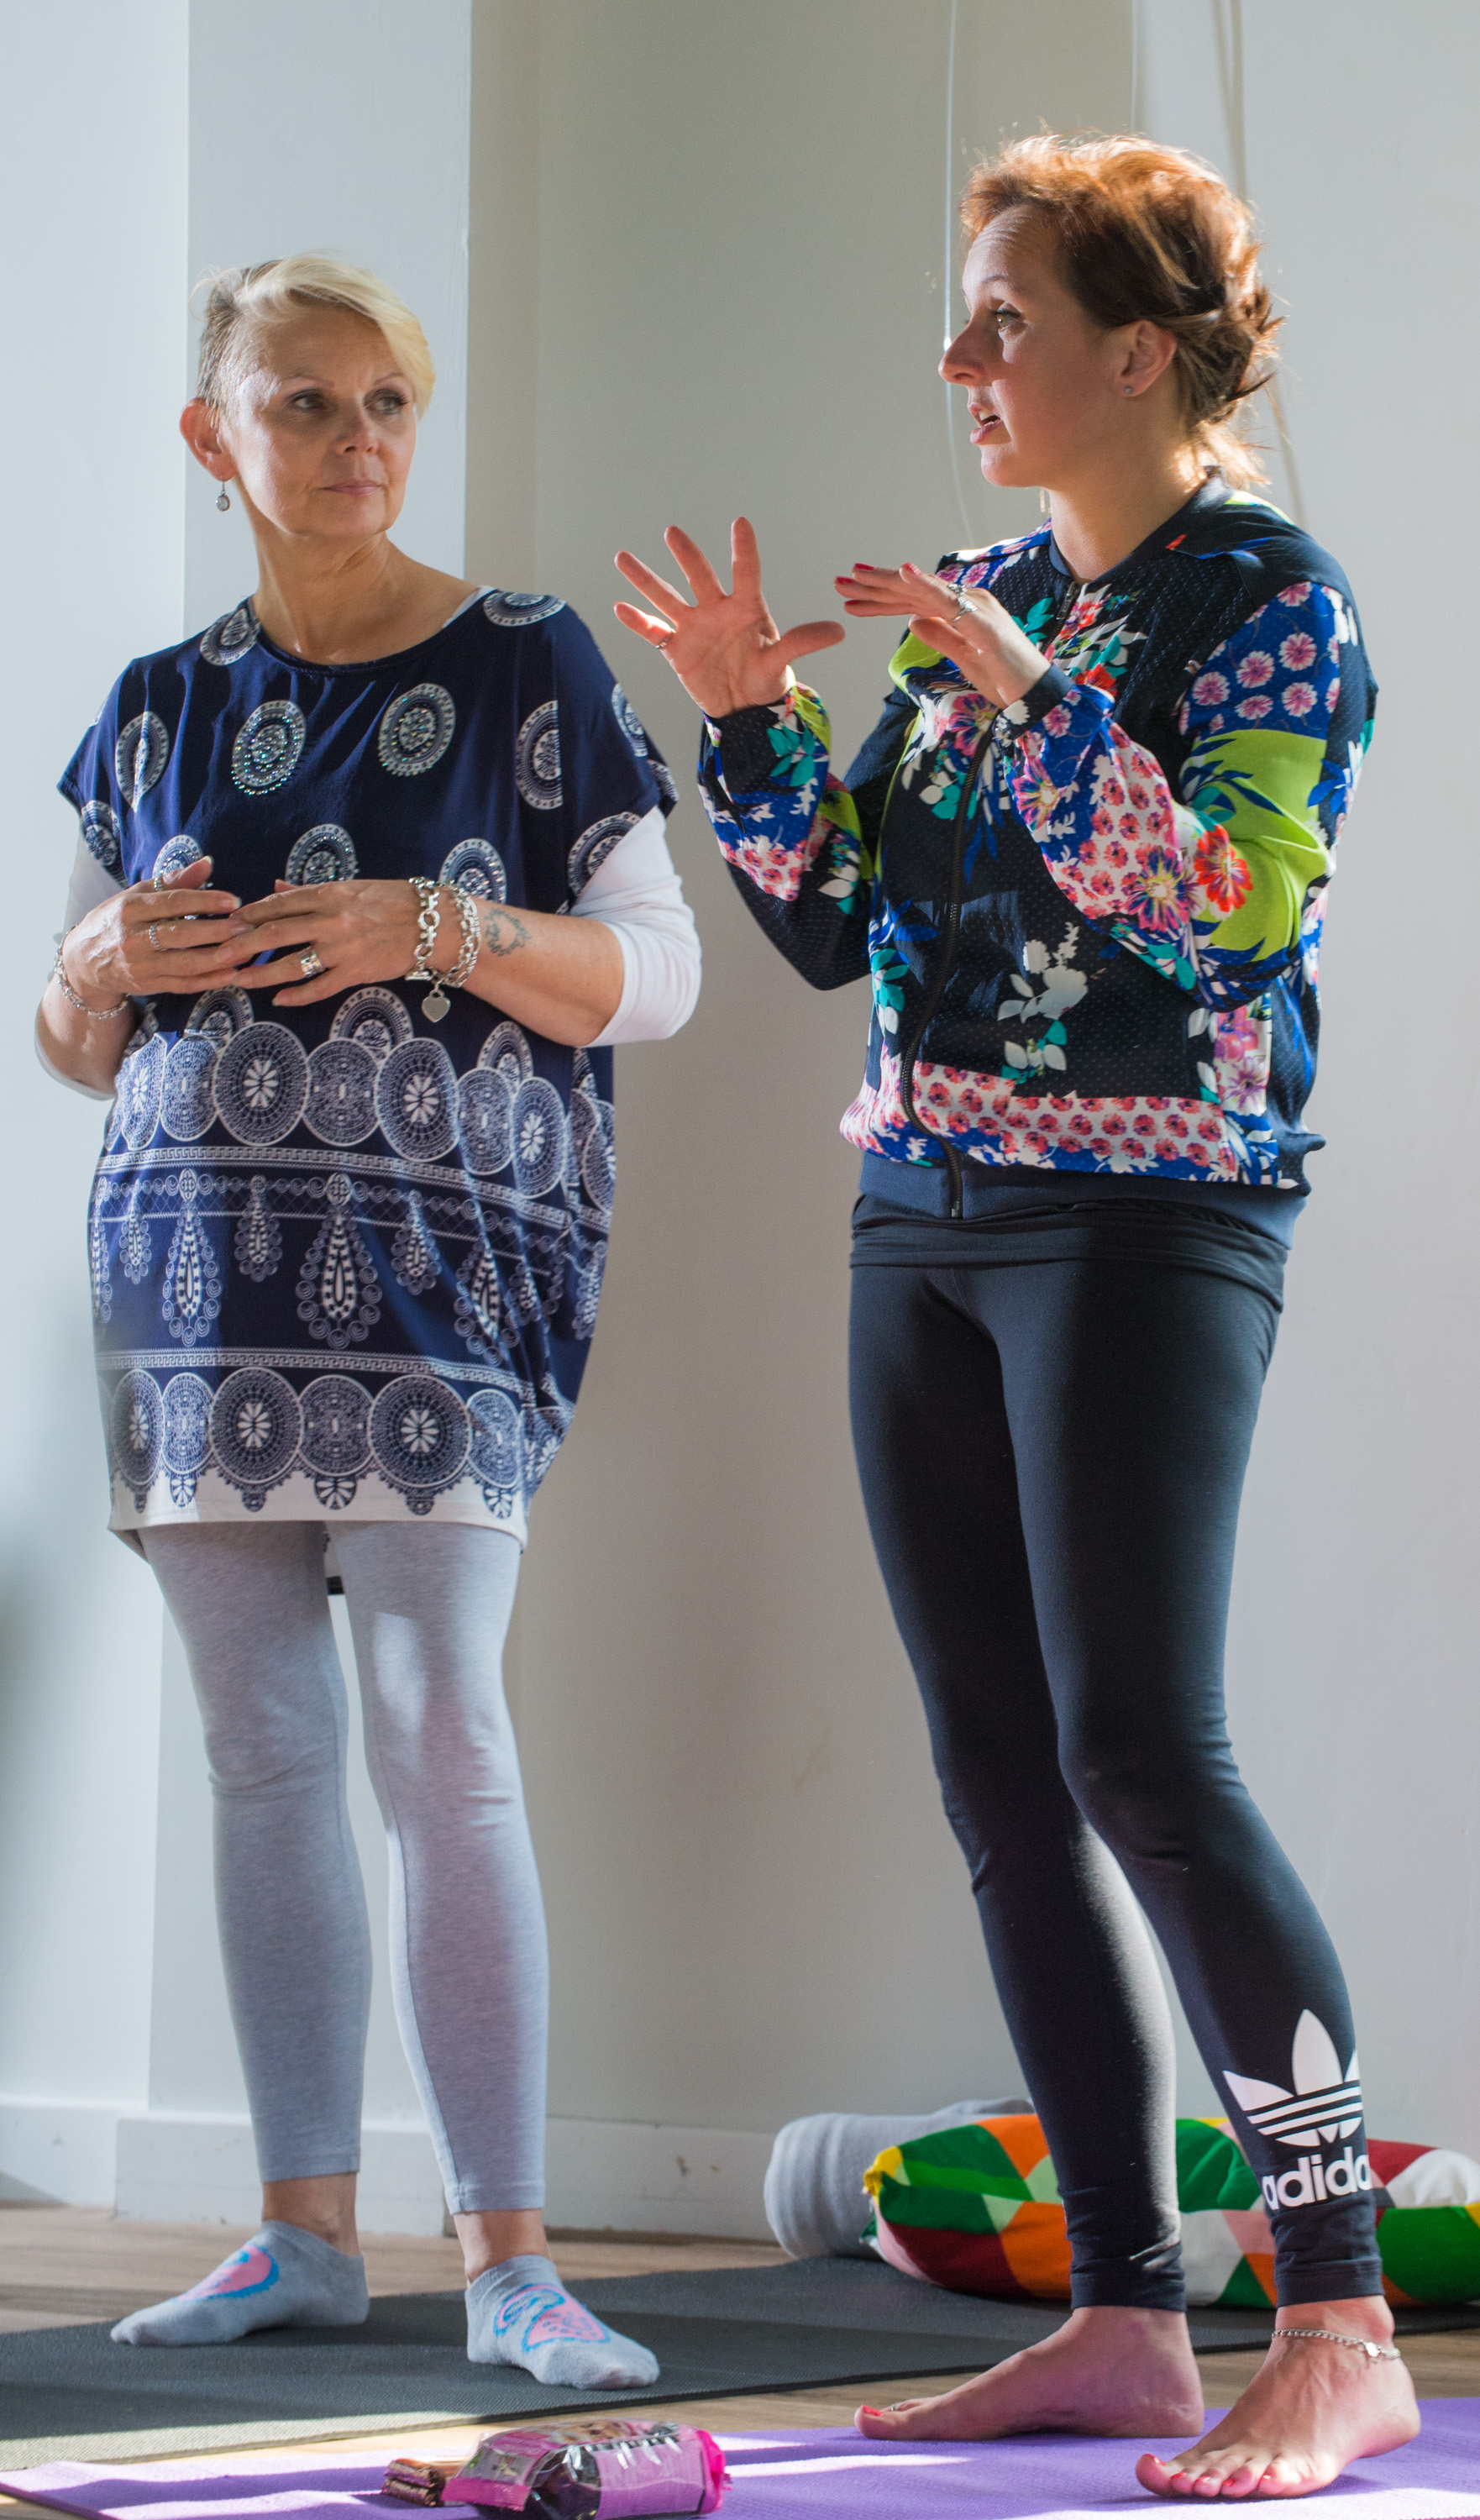 Parenting expert Jane Evans (L) and Founder of YOGADOO (R) Lucy Aston lead the sessions